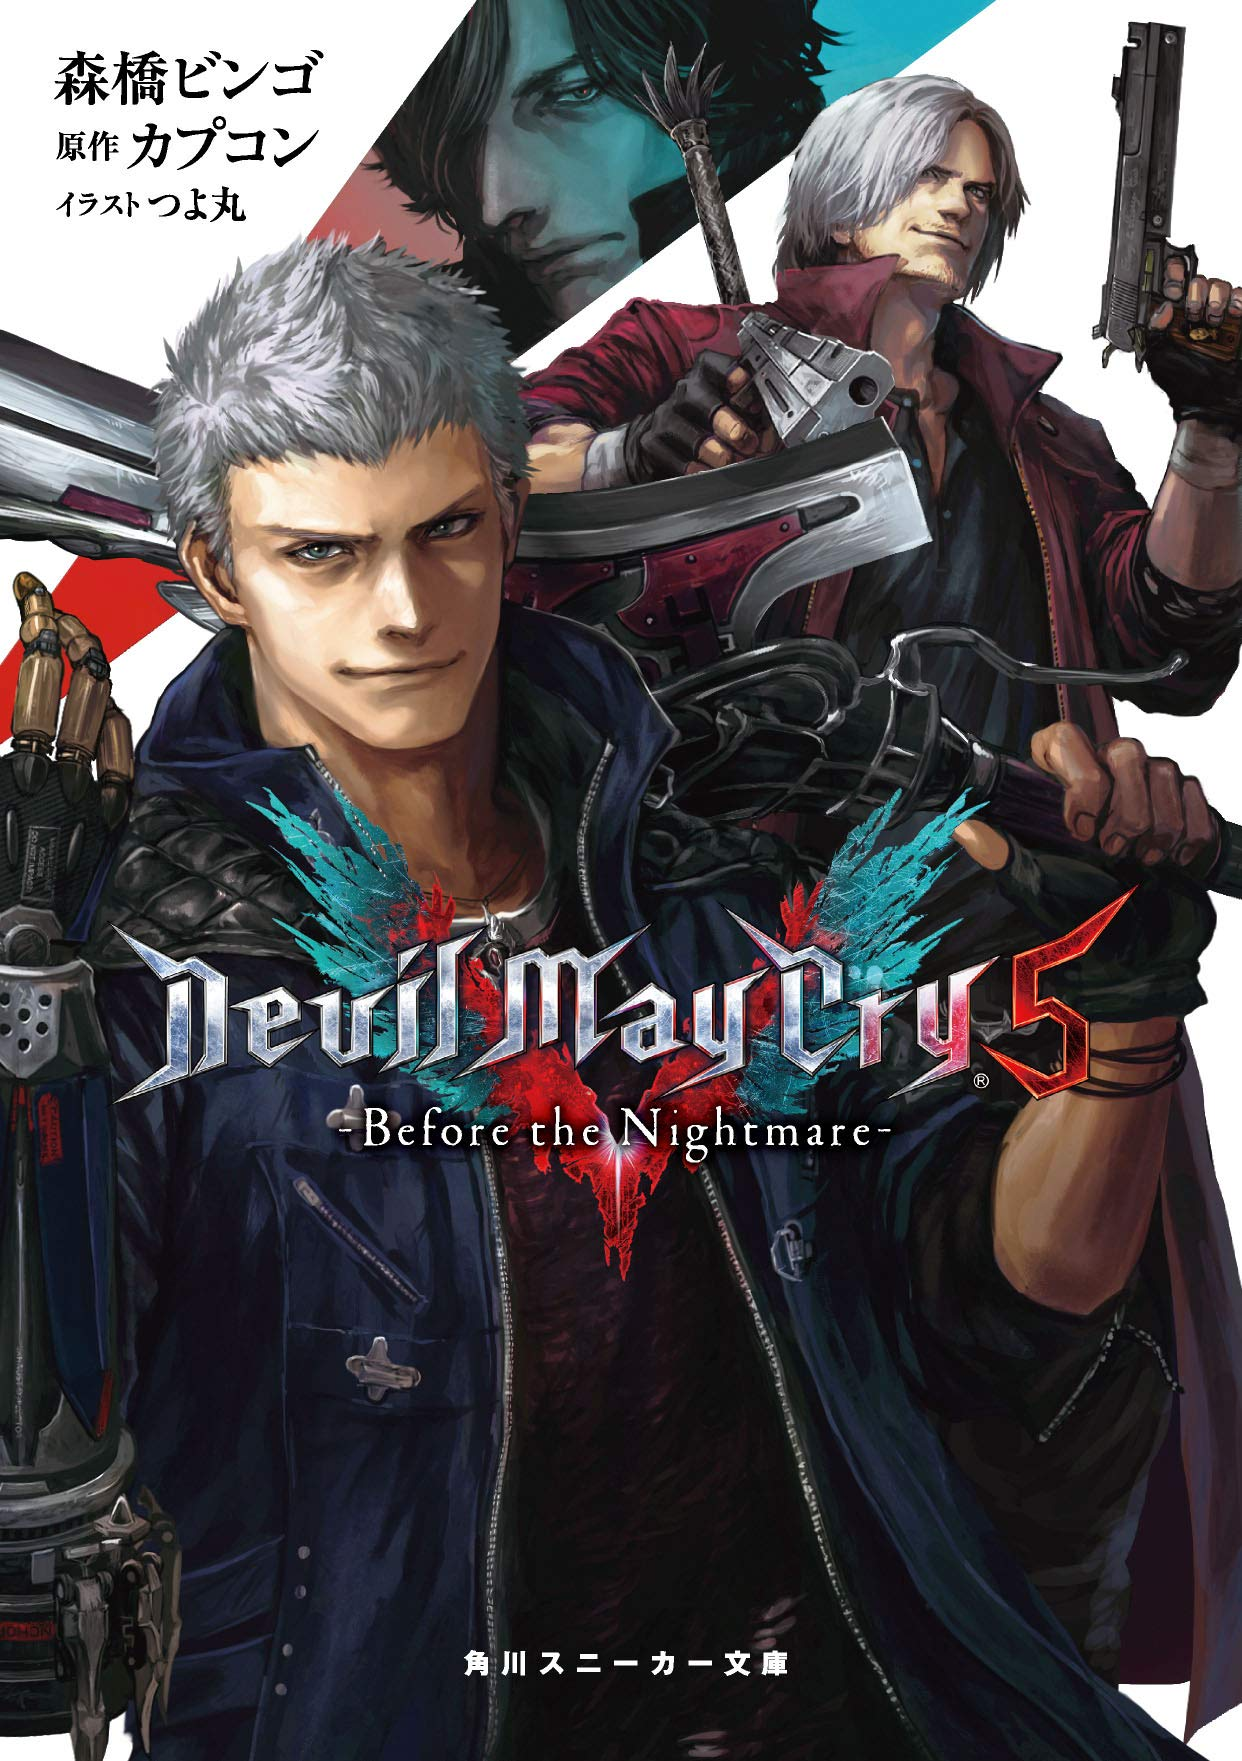 Devil May Cry 5 - Before the Nightmare - Vol 5: KADOKAWA